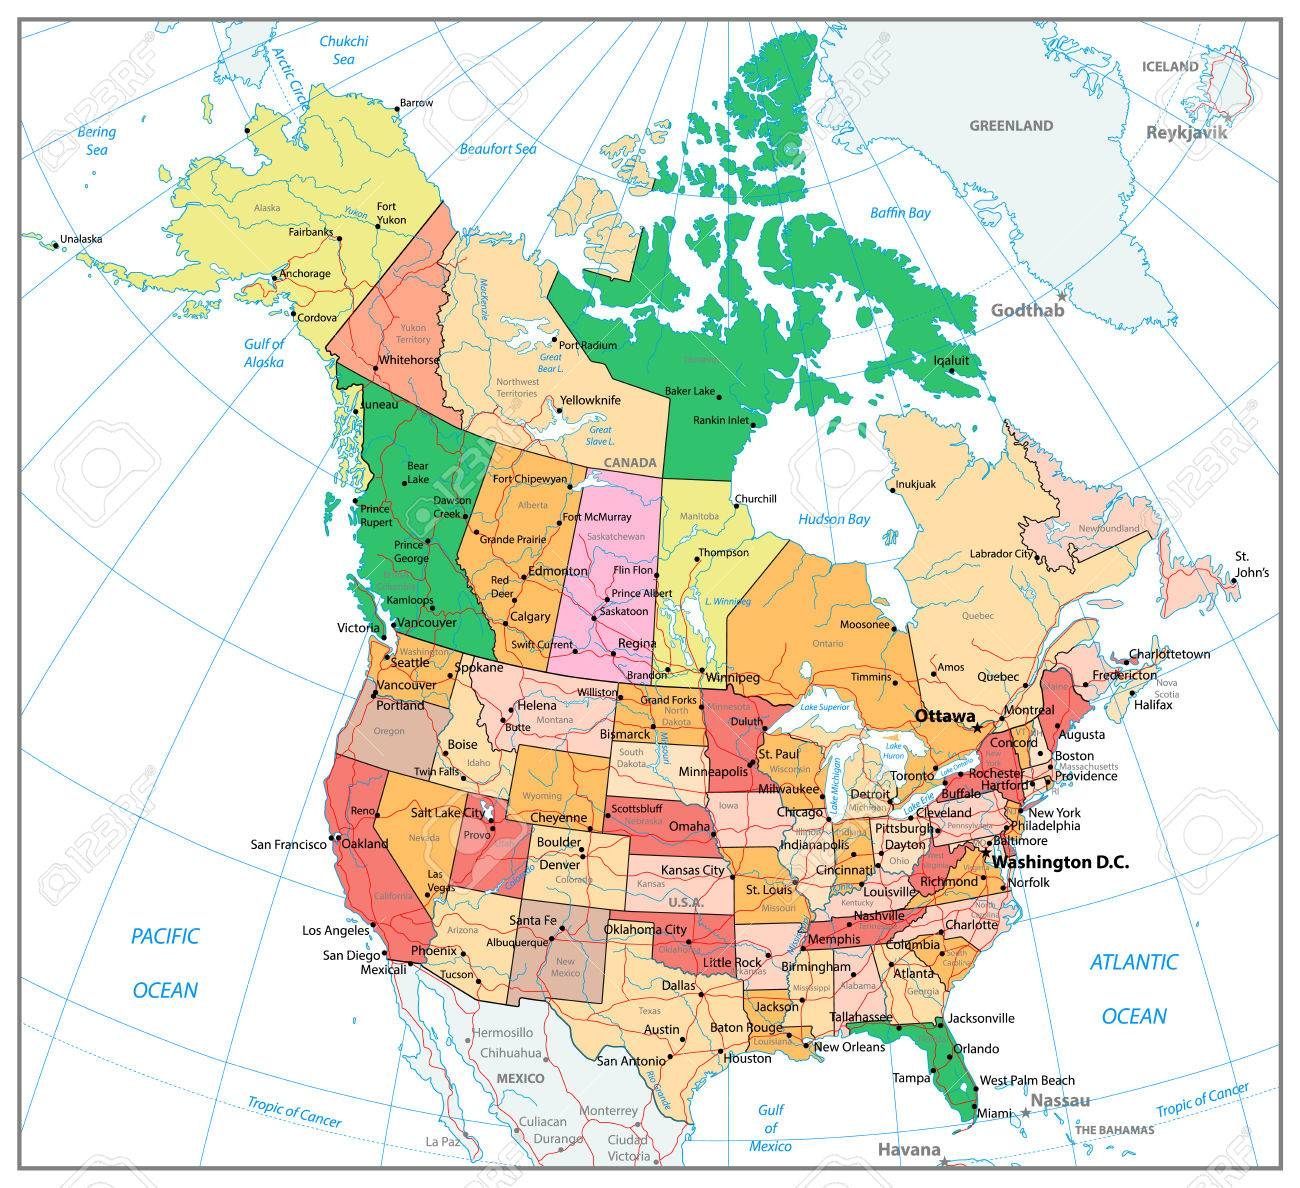 USA And Canada Large Detailed Political Map With Roads And Water